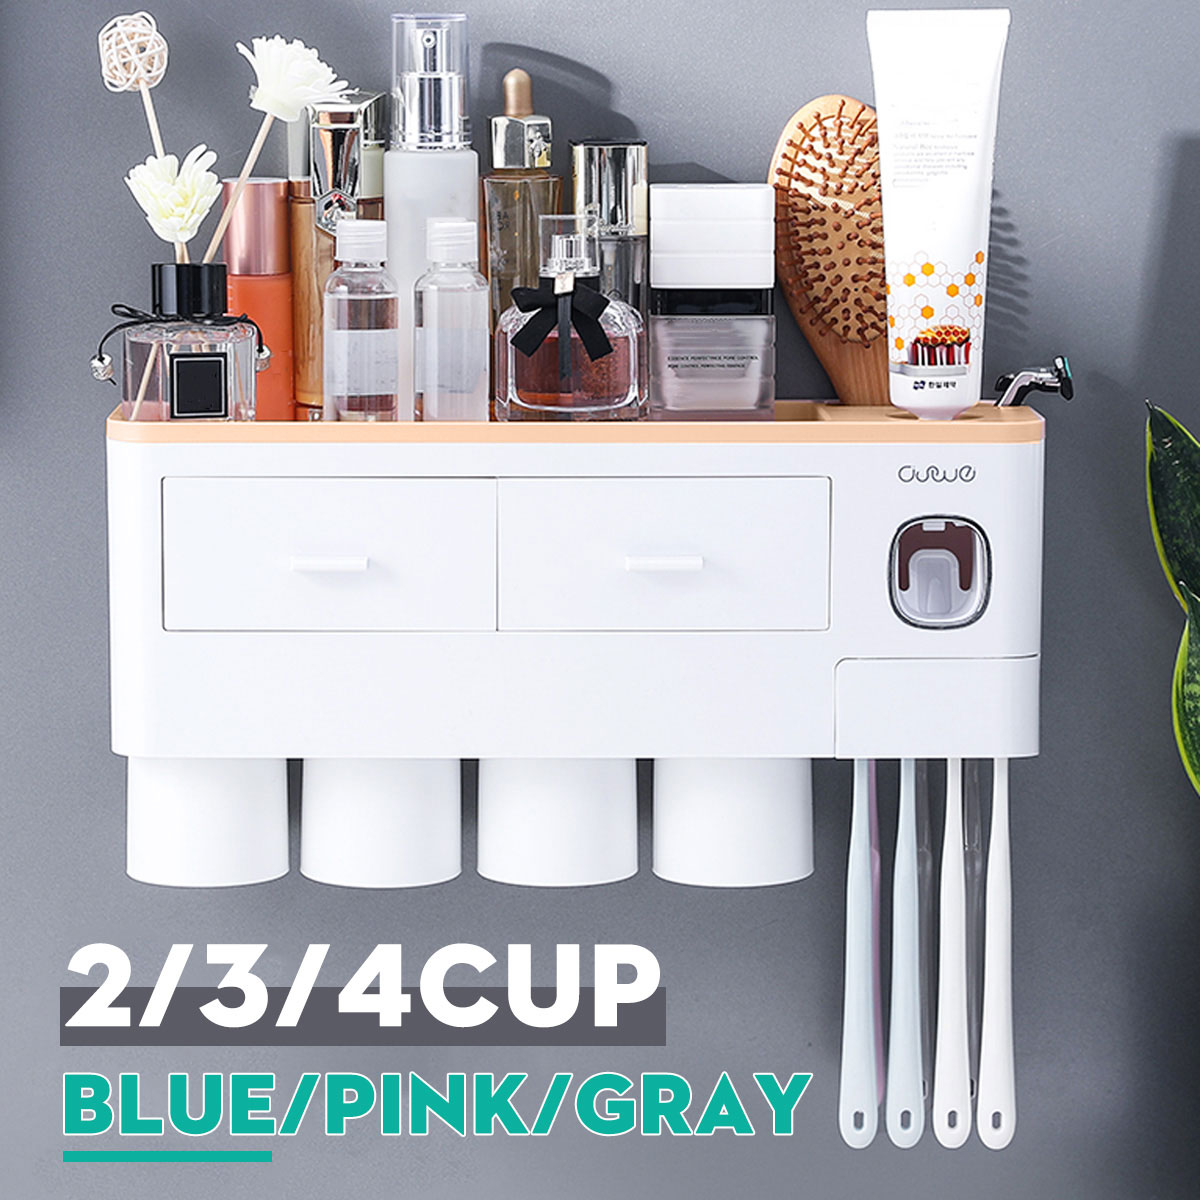 2/3/4 Cups Magnetic Toothpaste Holder Household Toothbrush Cup Holder Couple Toothbrush Storage Tool Portable And Easy Install